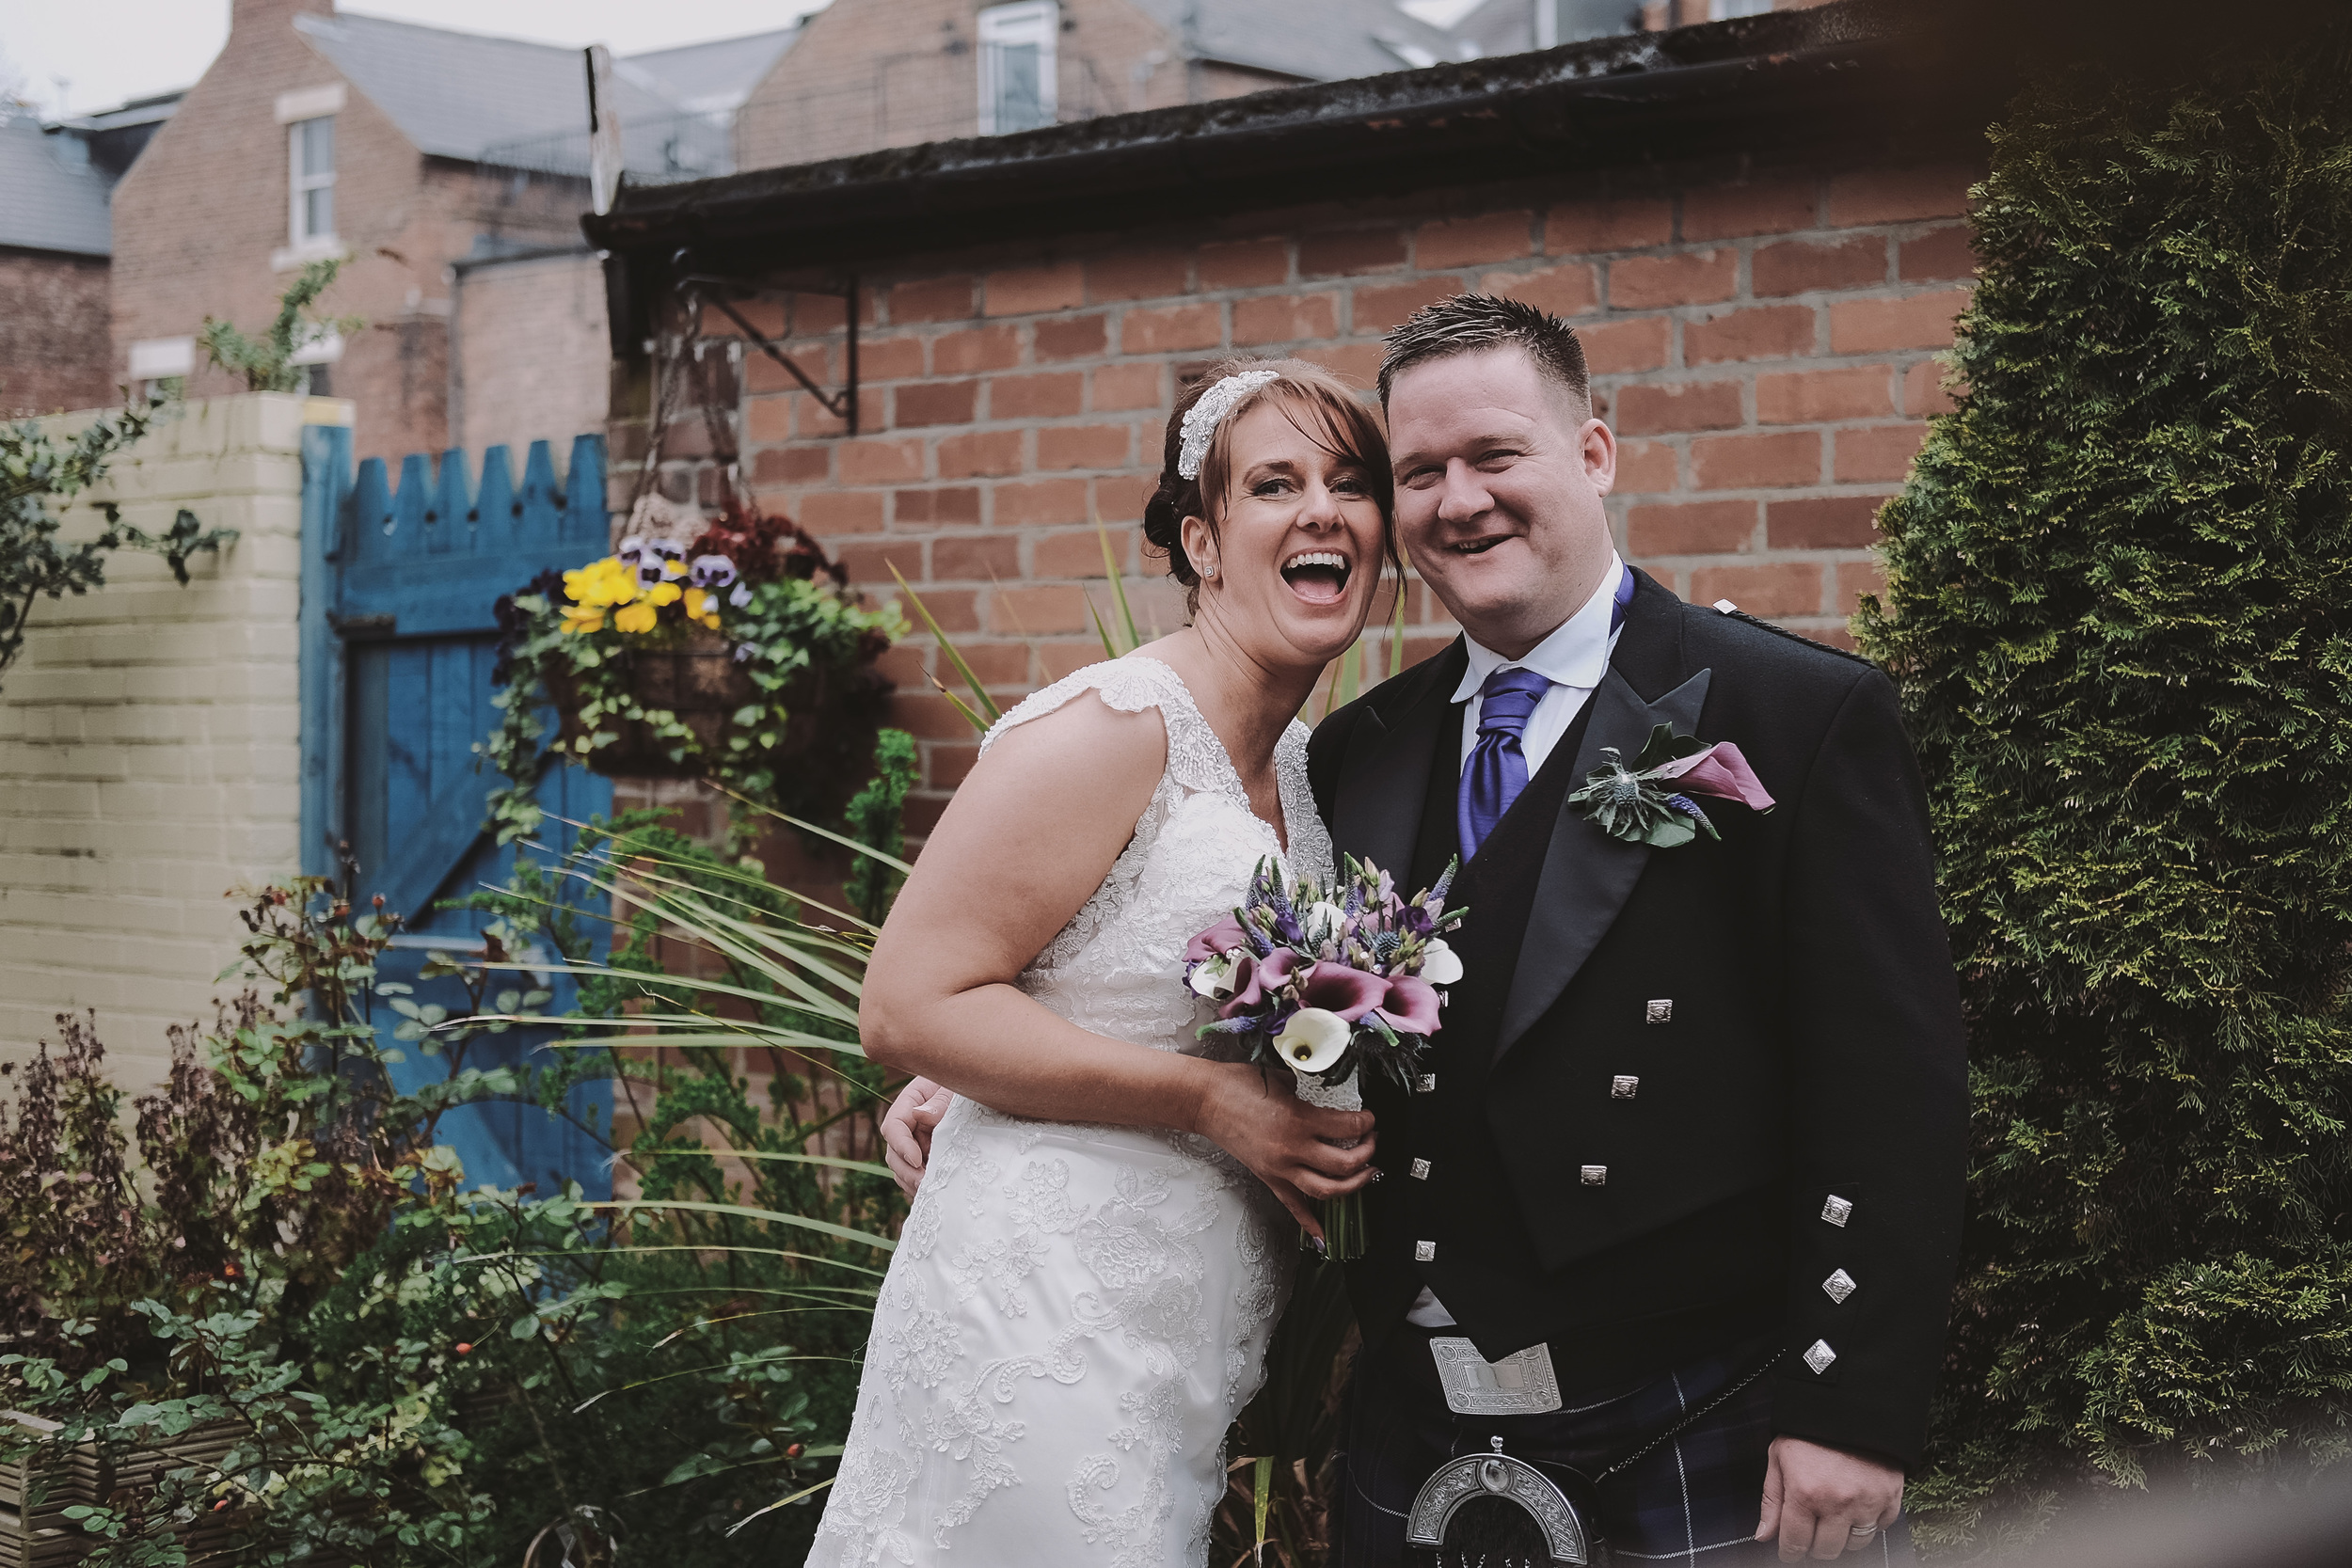 Newcastle Wedding Photographer // Bride and groom posing in secret garden of Caledonian Hotel